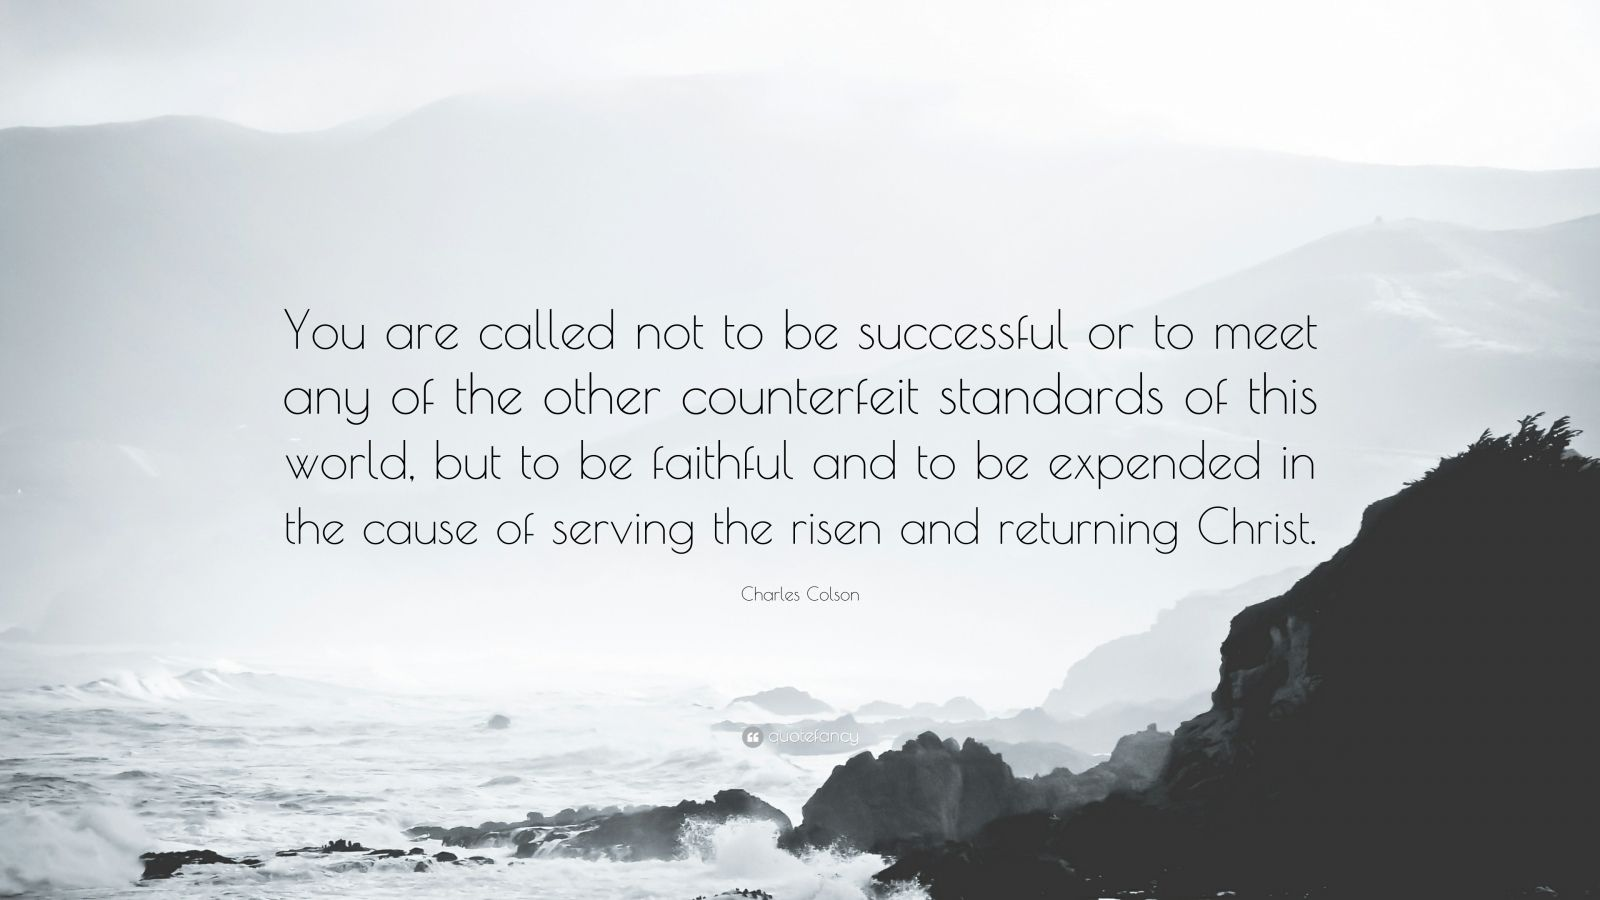 """Charles Colson Quote: """"You are called not to be successful or to meet any of the other counterfeit standards of this world, but to be faithful and to be expended in the cause of serving the risen and returning Christ."""""""